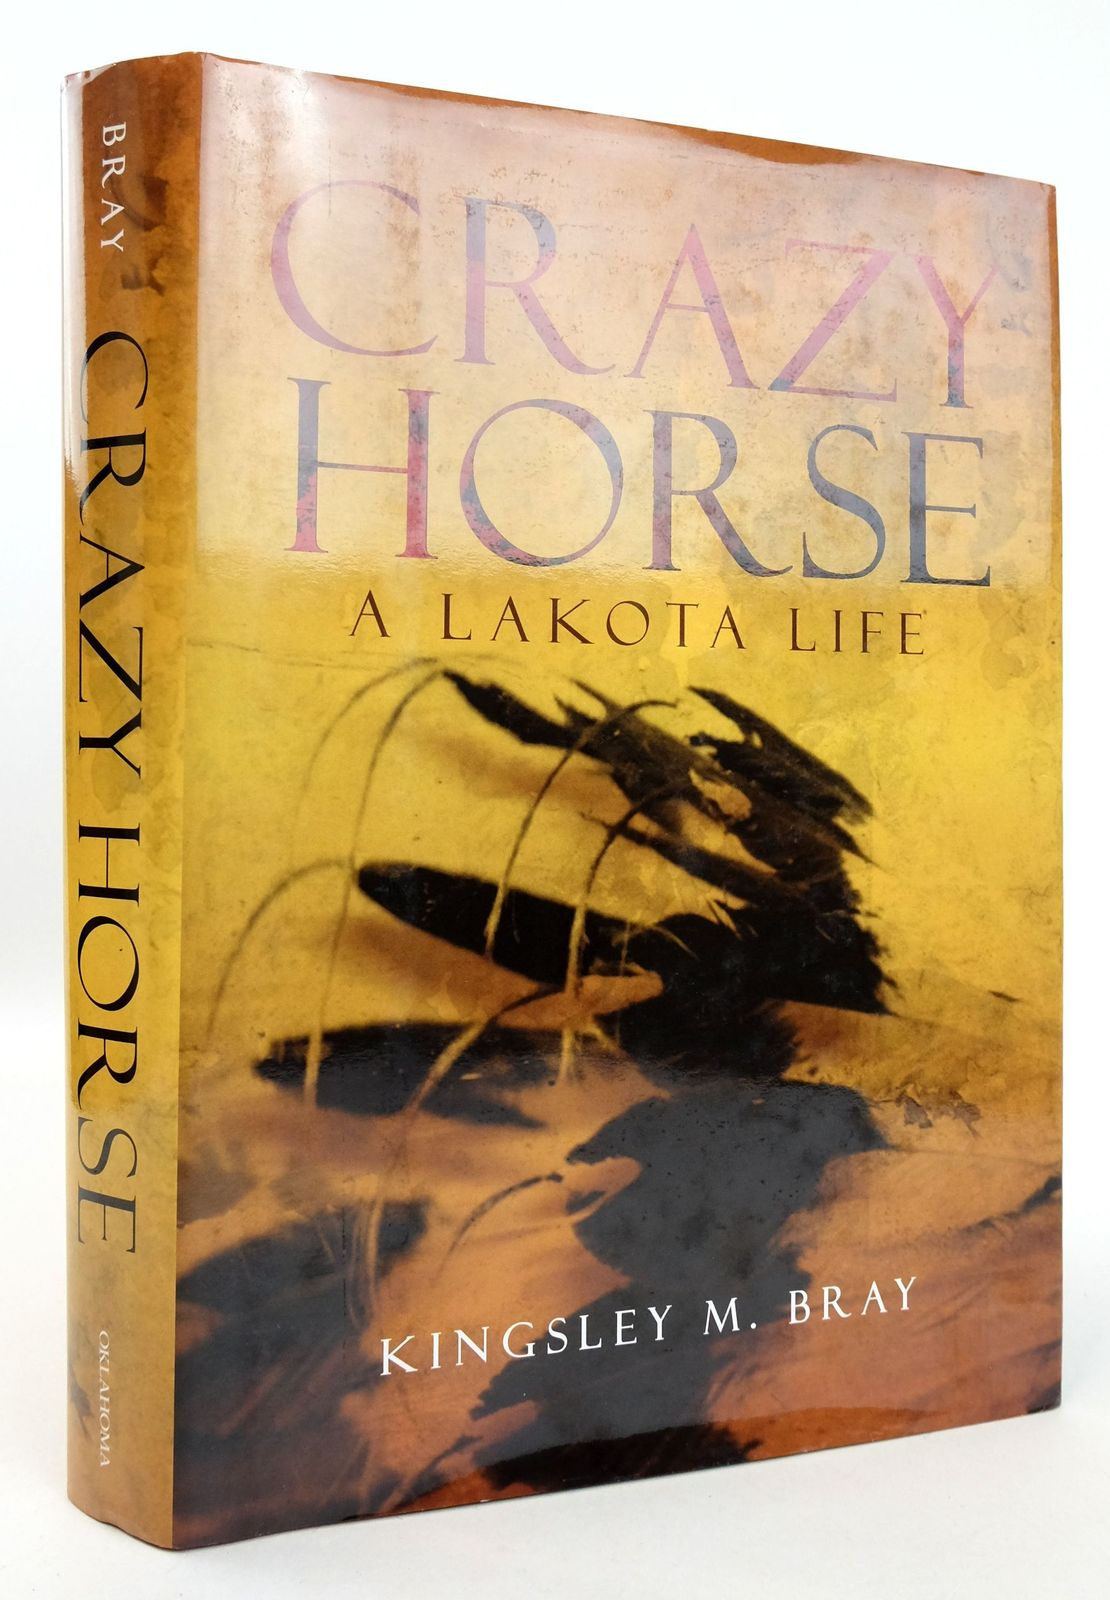 Photo of CRAZY HORSE: A LAKOTA LIFE